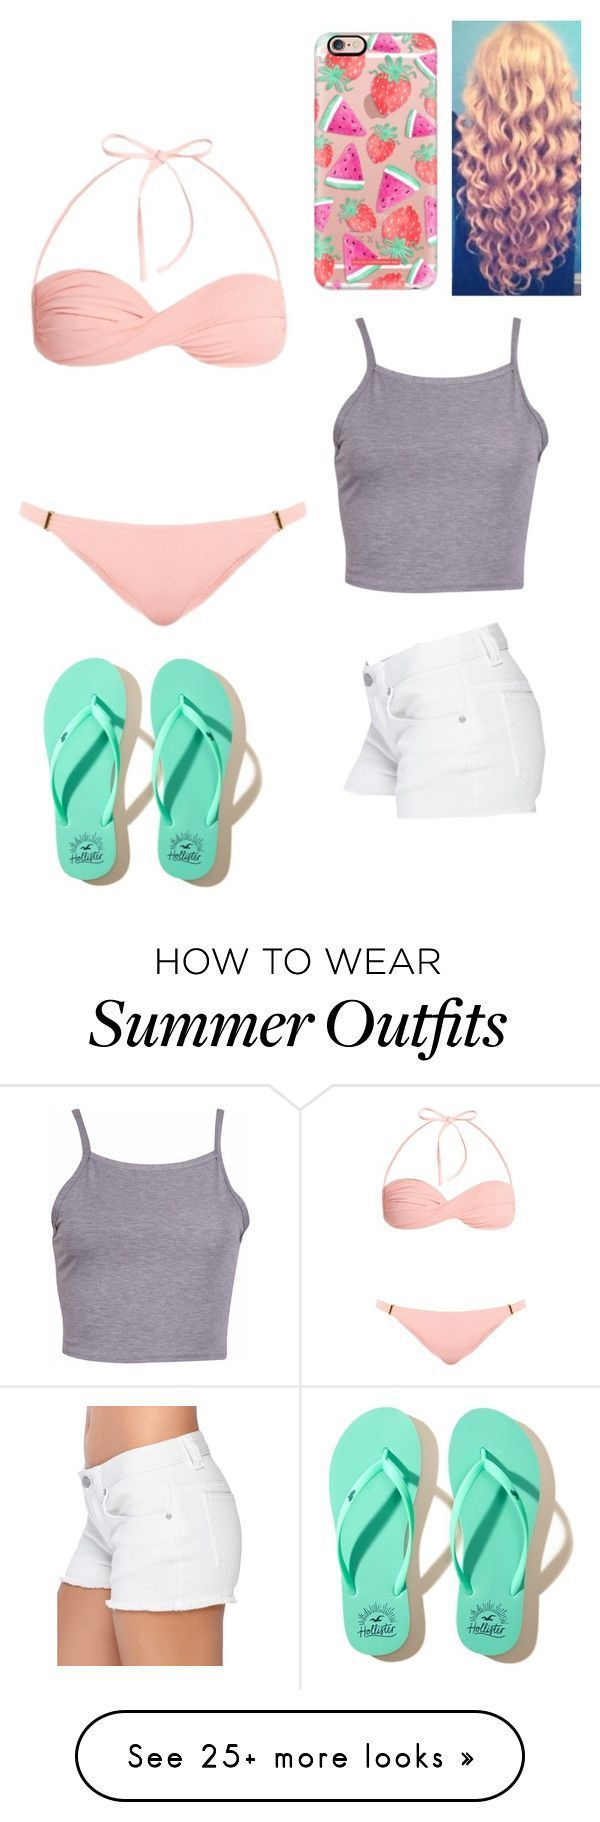 """Summer Outfits : """"Beach/boardwalk outfit made by @xoxamandalou """" by caka-1 on Polyvore featuring … – Fashion Inspire 